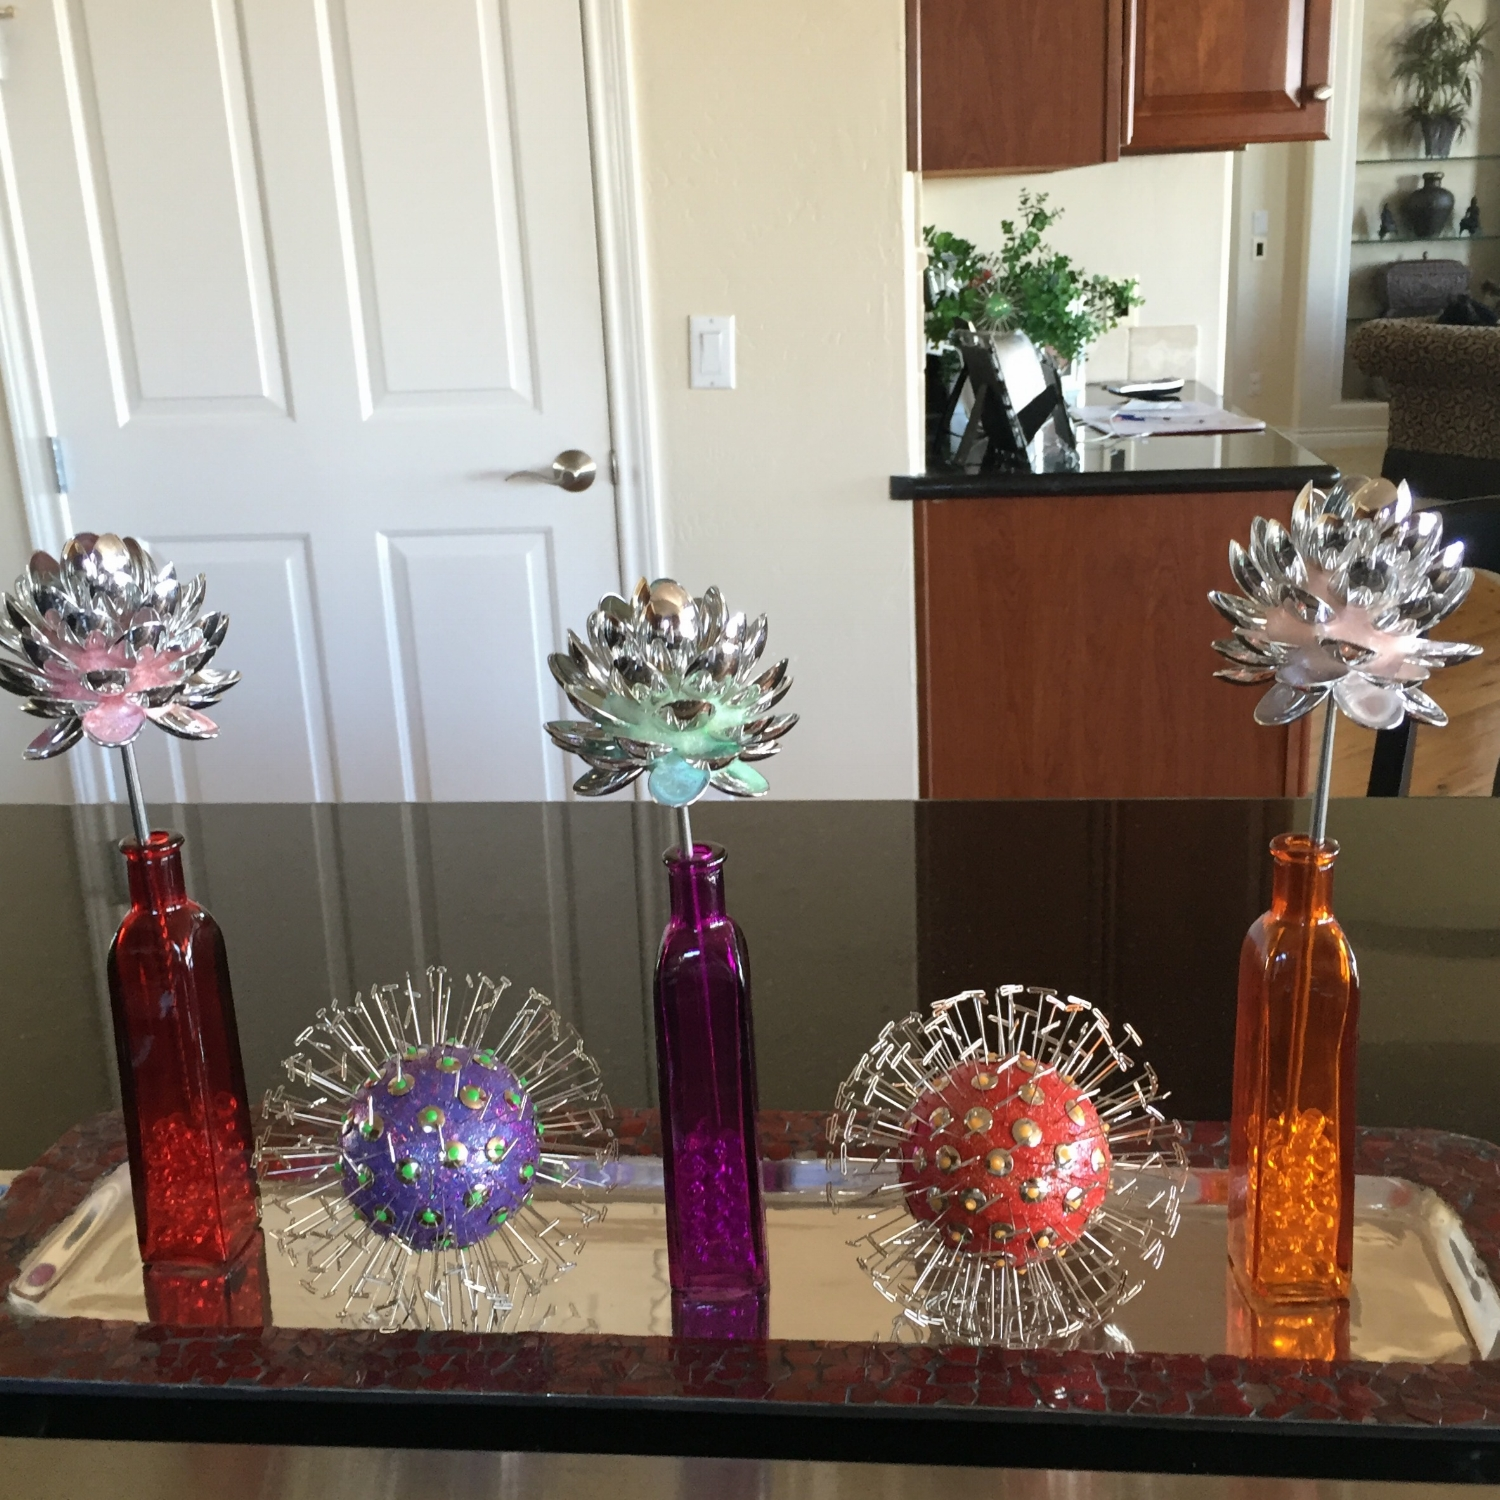 "4"" tabletop spoon flowers and 5.5"" stemless dandis perfect on the kitchen island!"